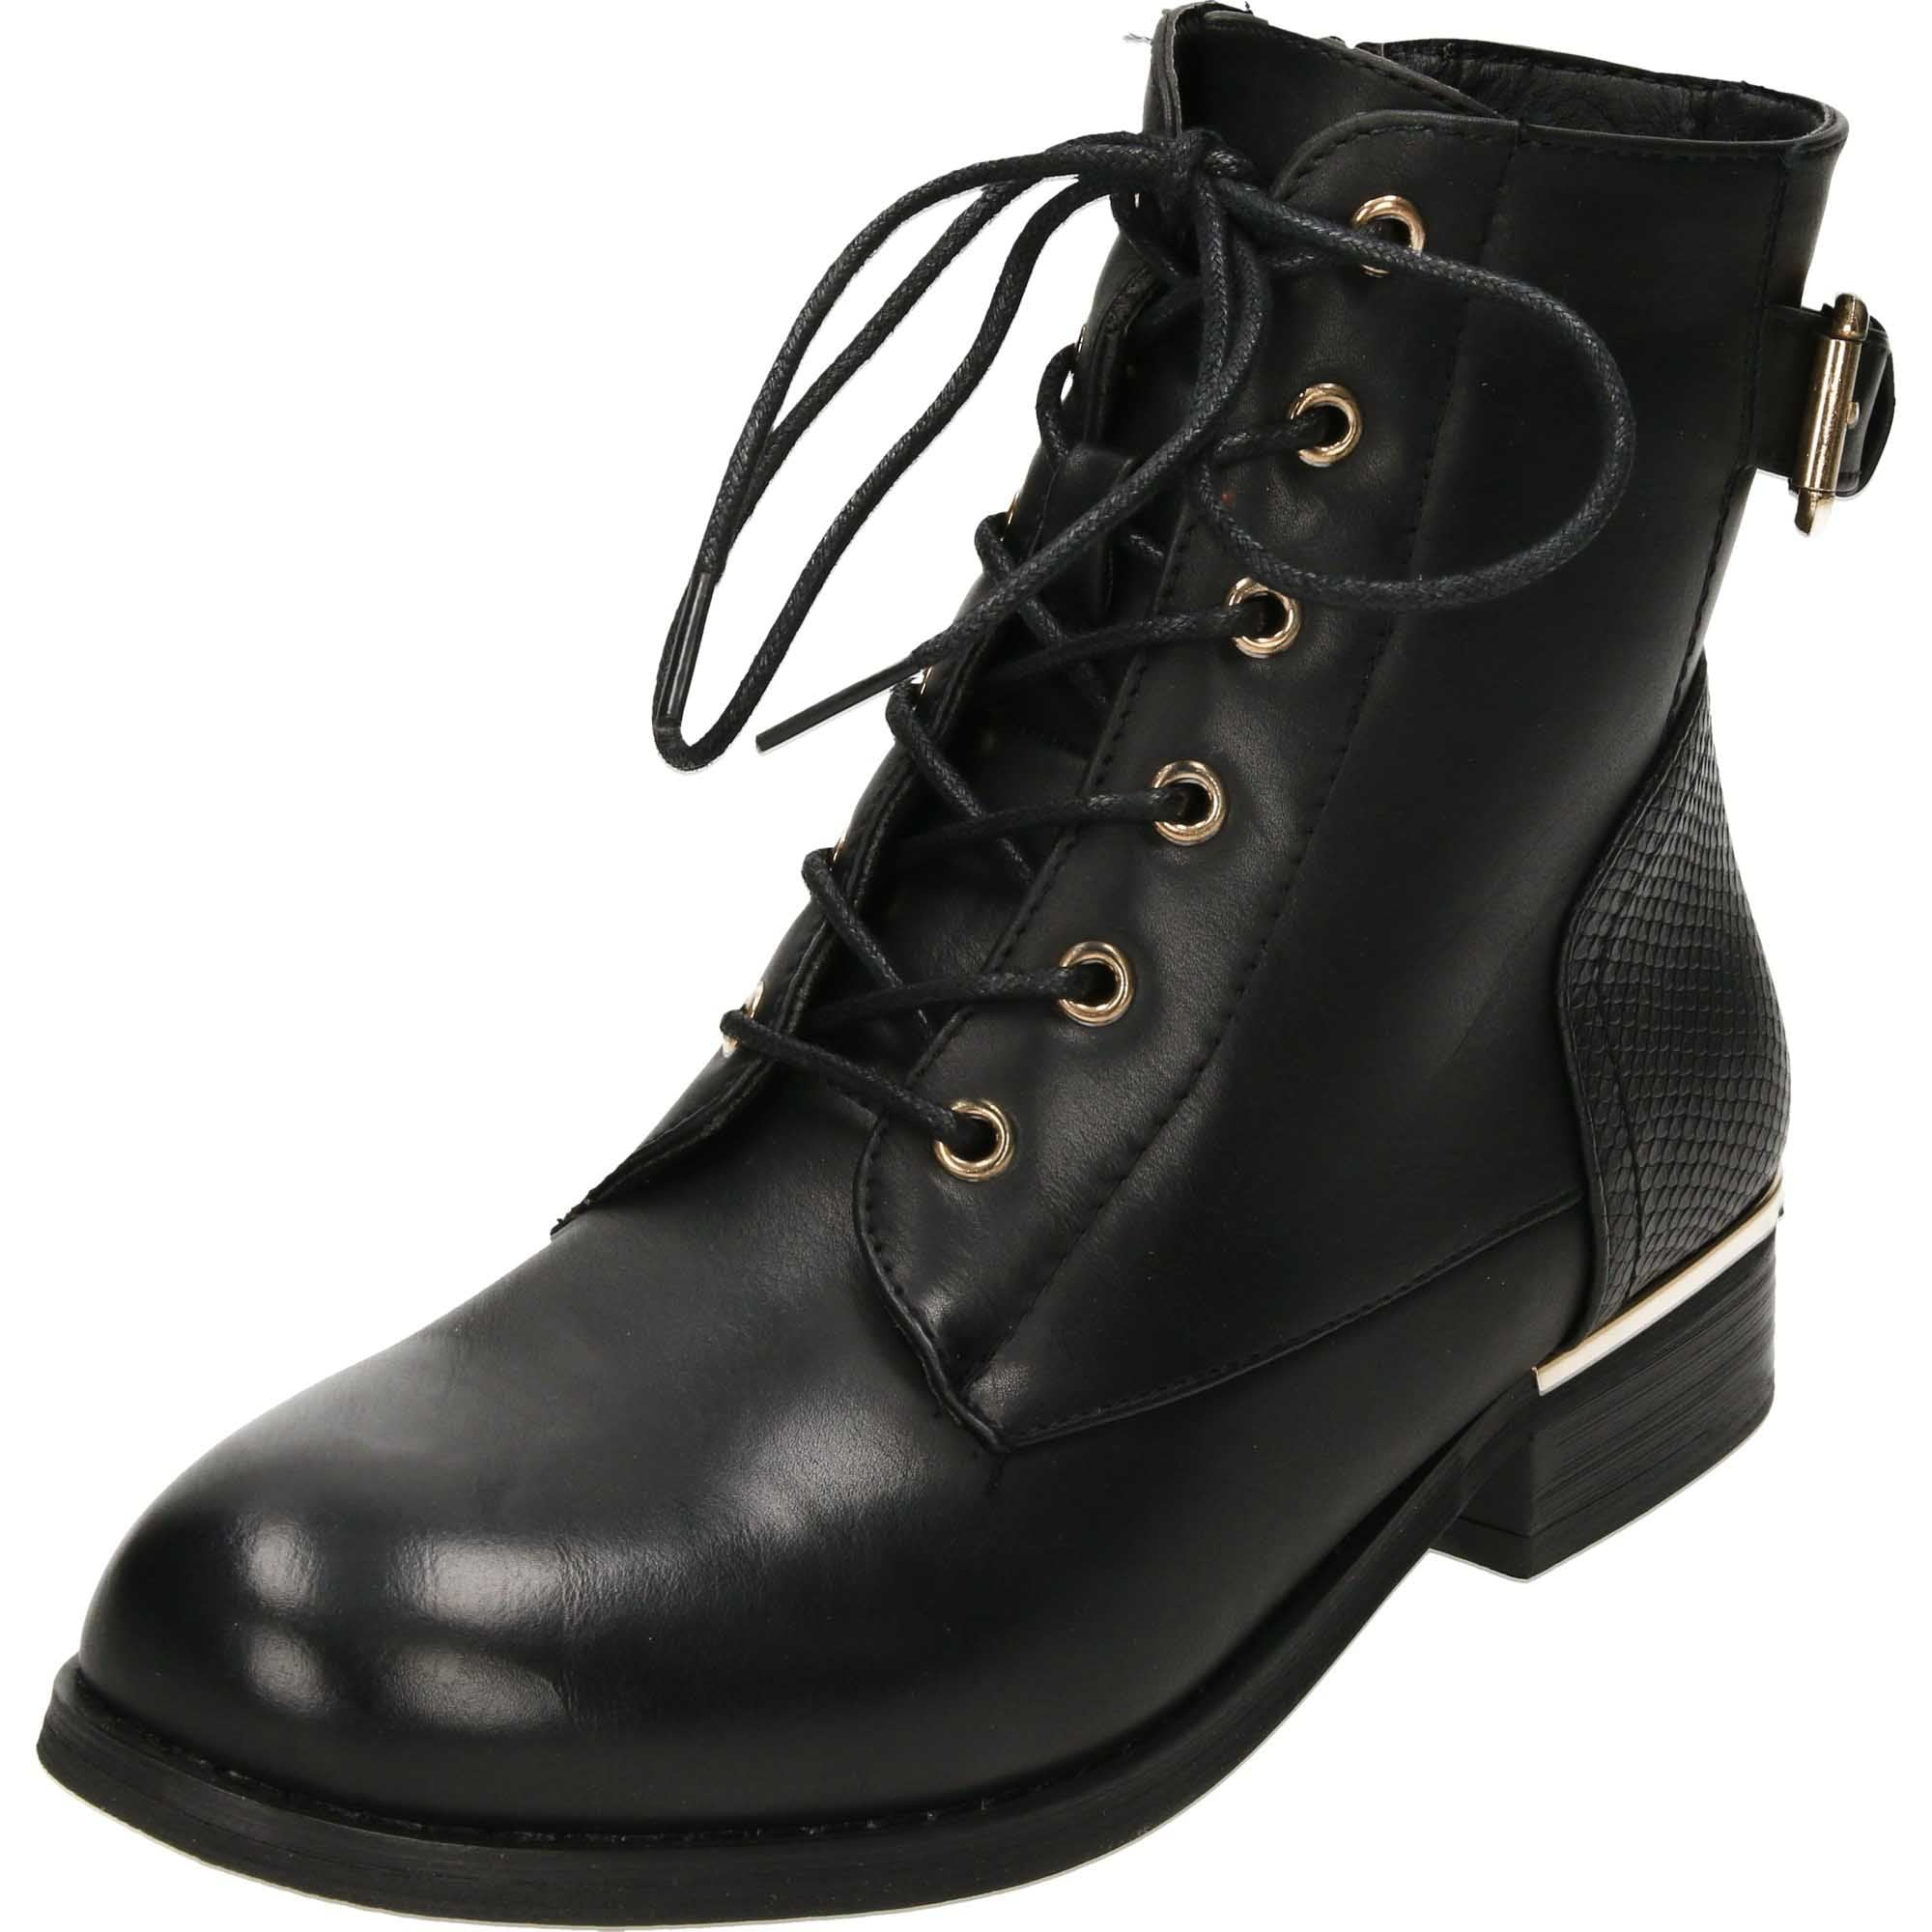 Krush Lace Up Black Flat Military Ankle